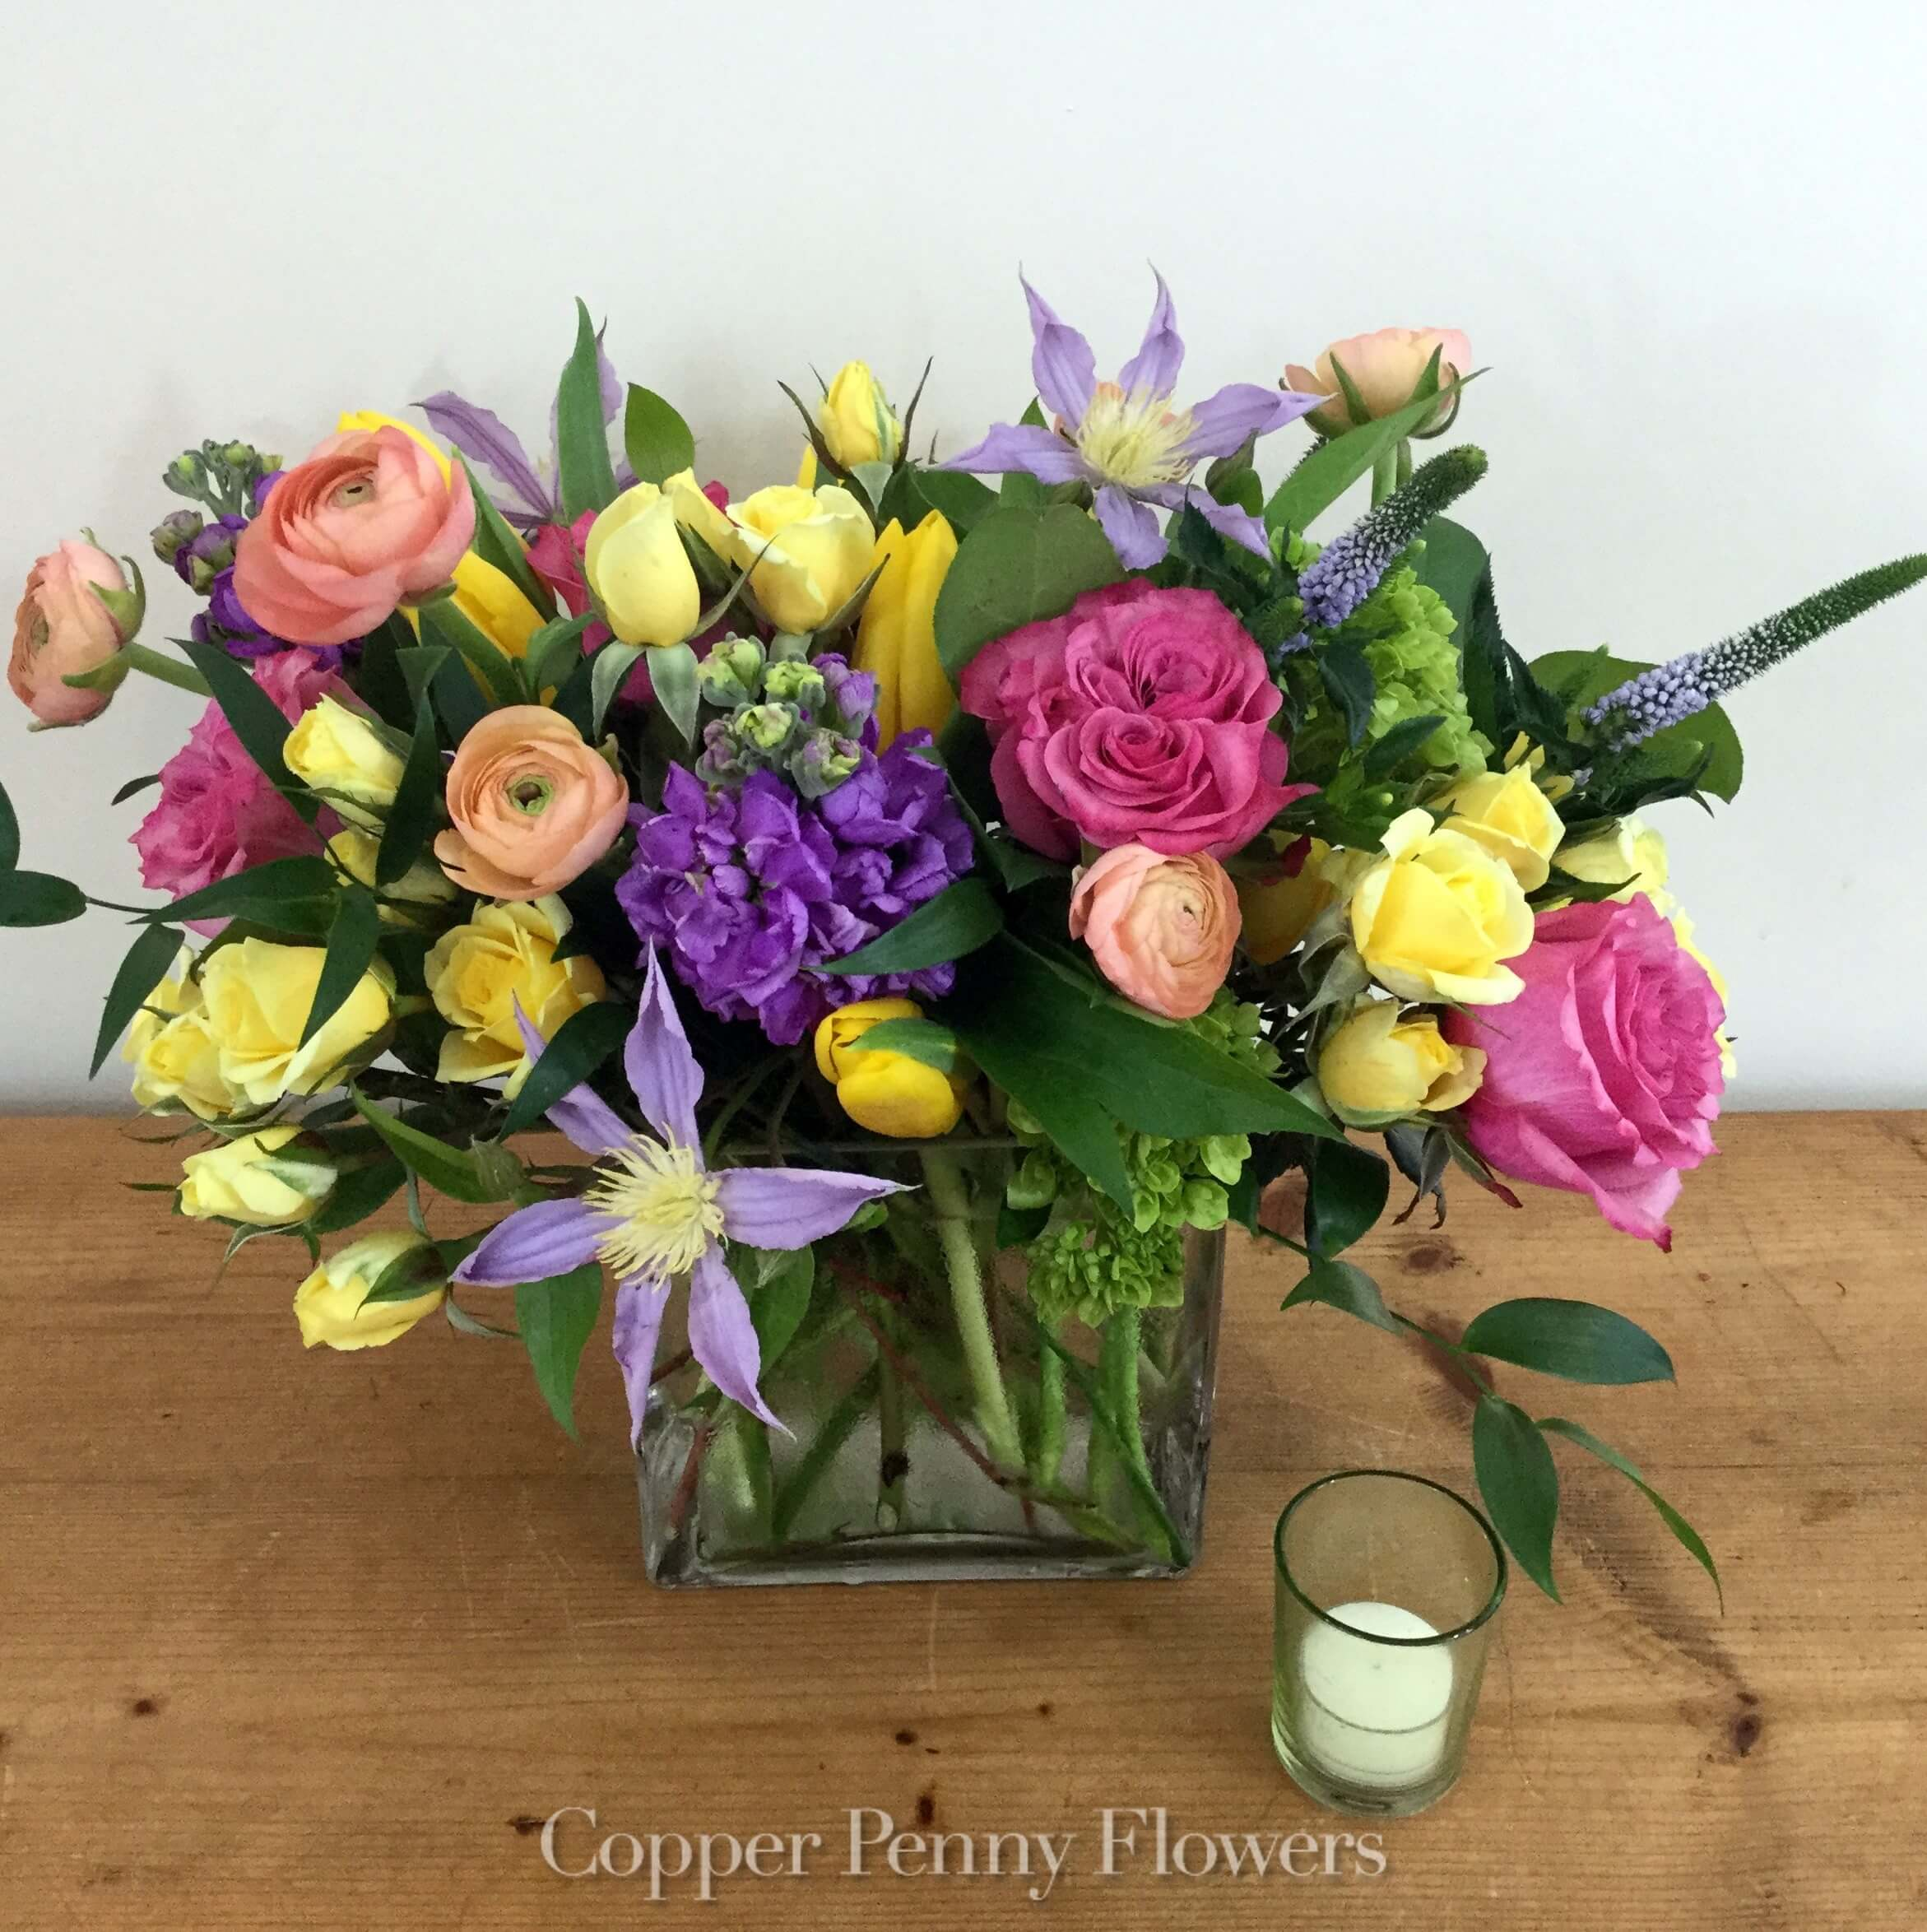 Butterfly Happy flowers arrangement is a mixed spring flowers in a glass rectangle